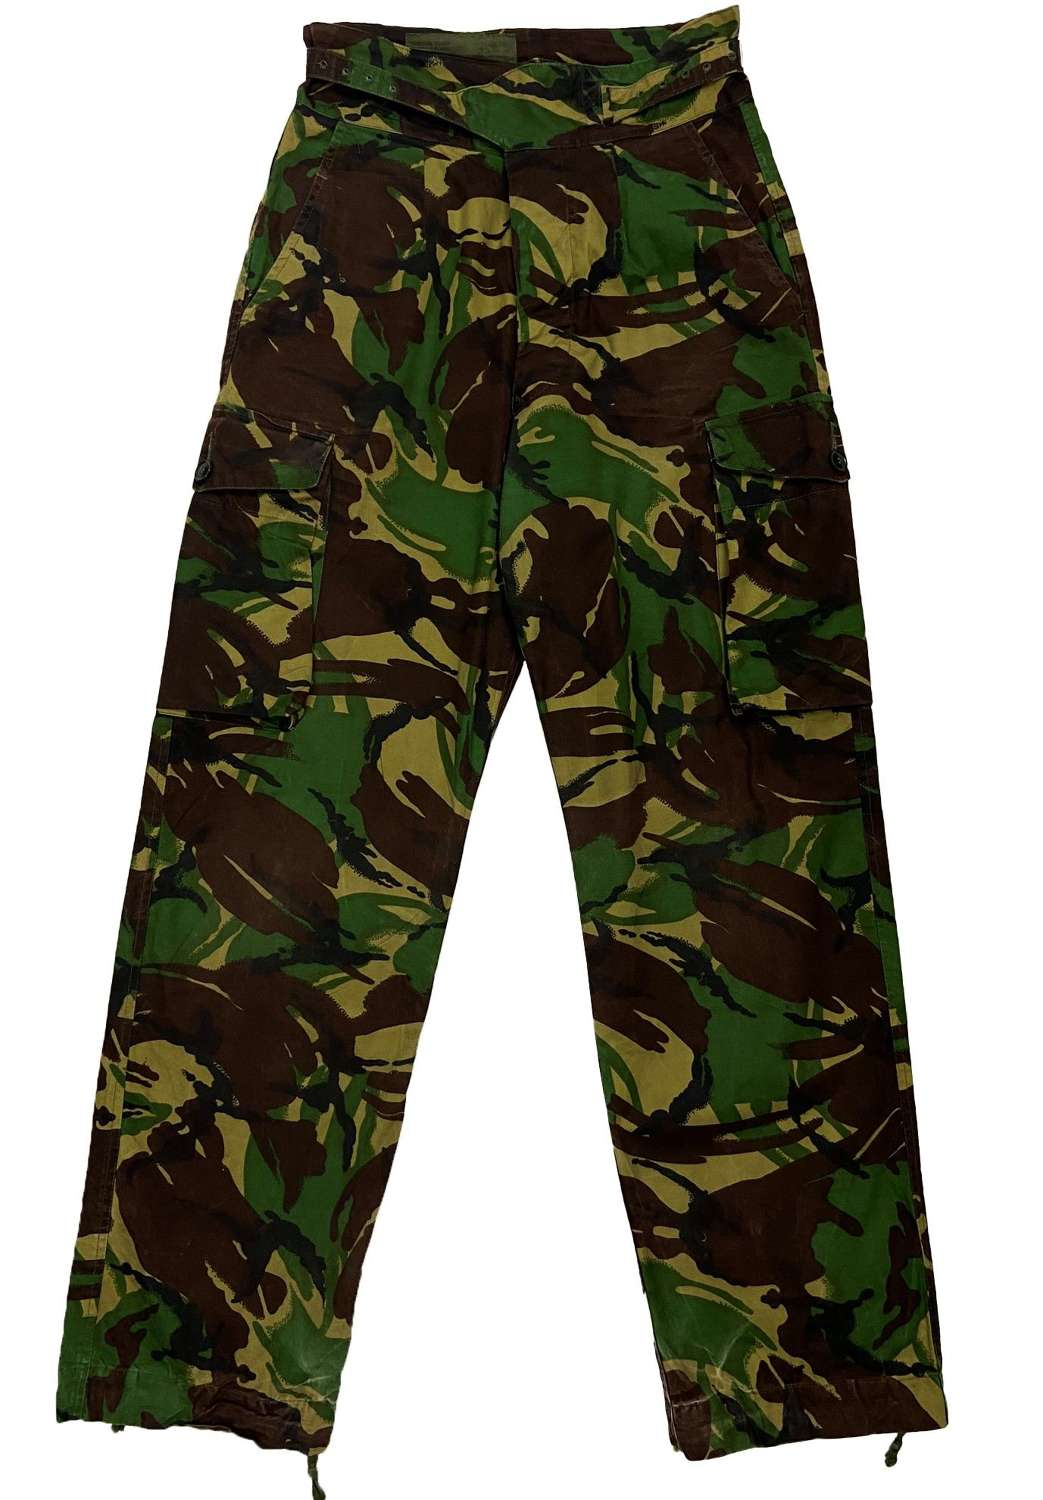 Original 1970s British Army DPM Windproof Trousers